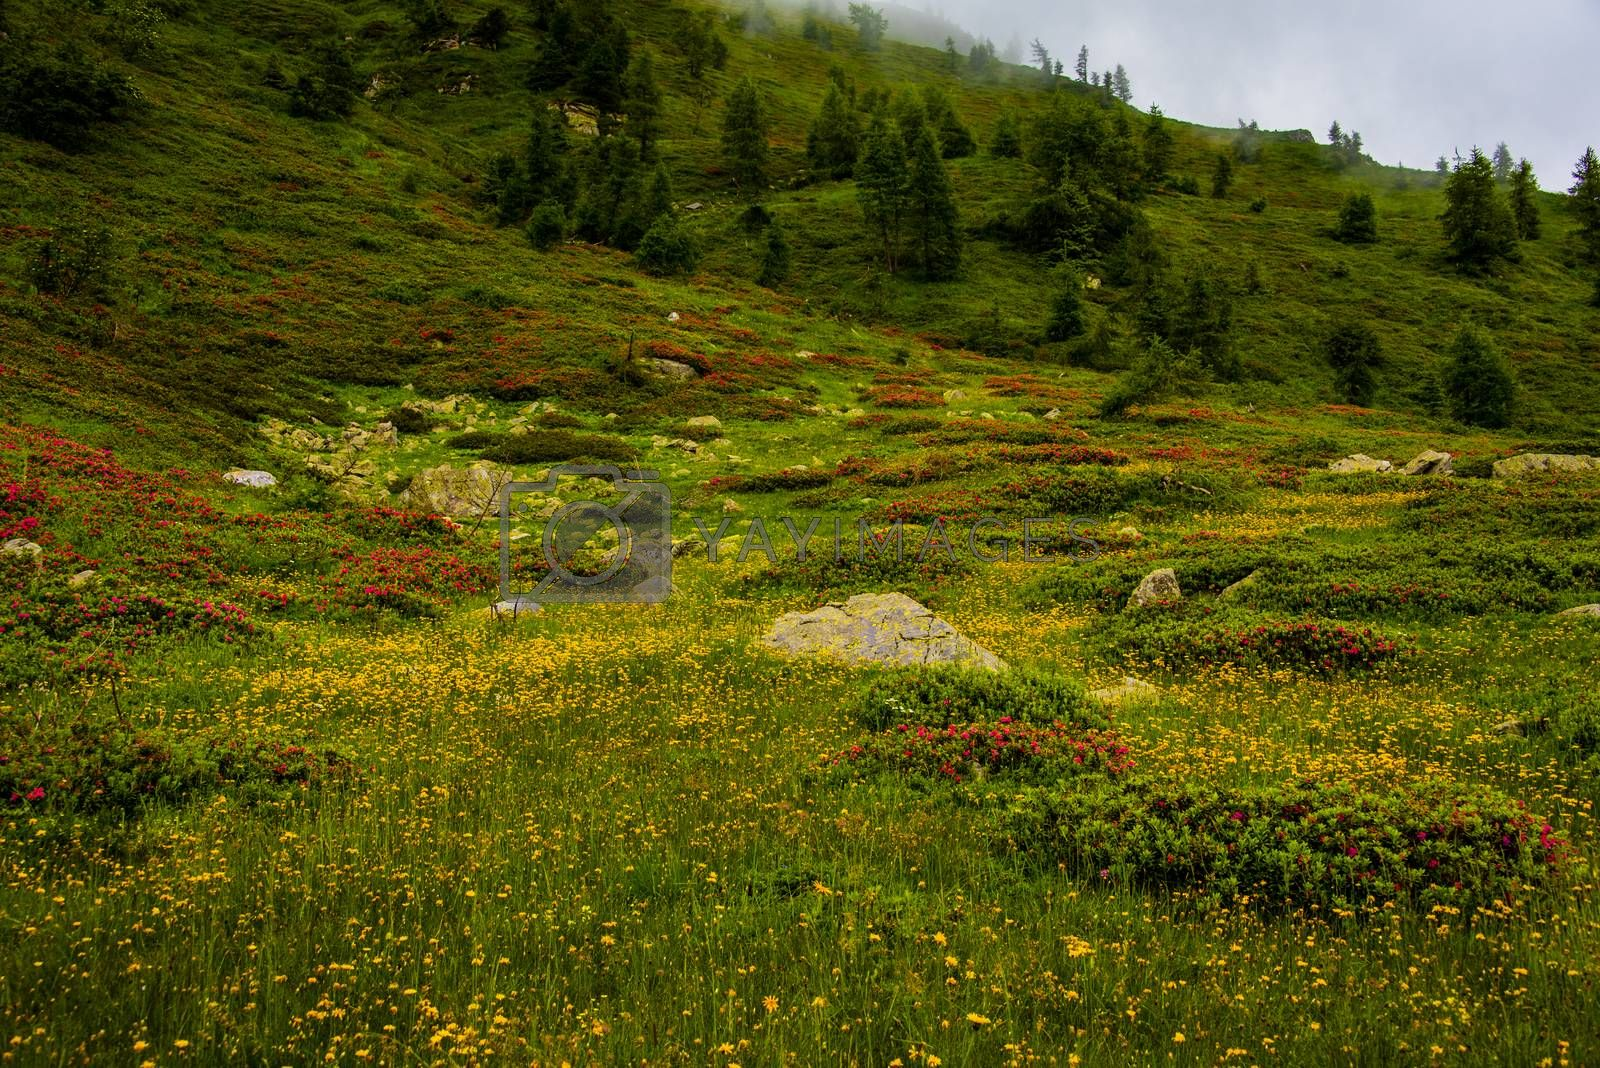 beautiful yellow and red flowers on the Lagorai meadows among the granite rocks near Lake Levico, Trento, Italy